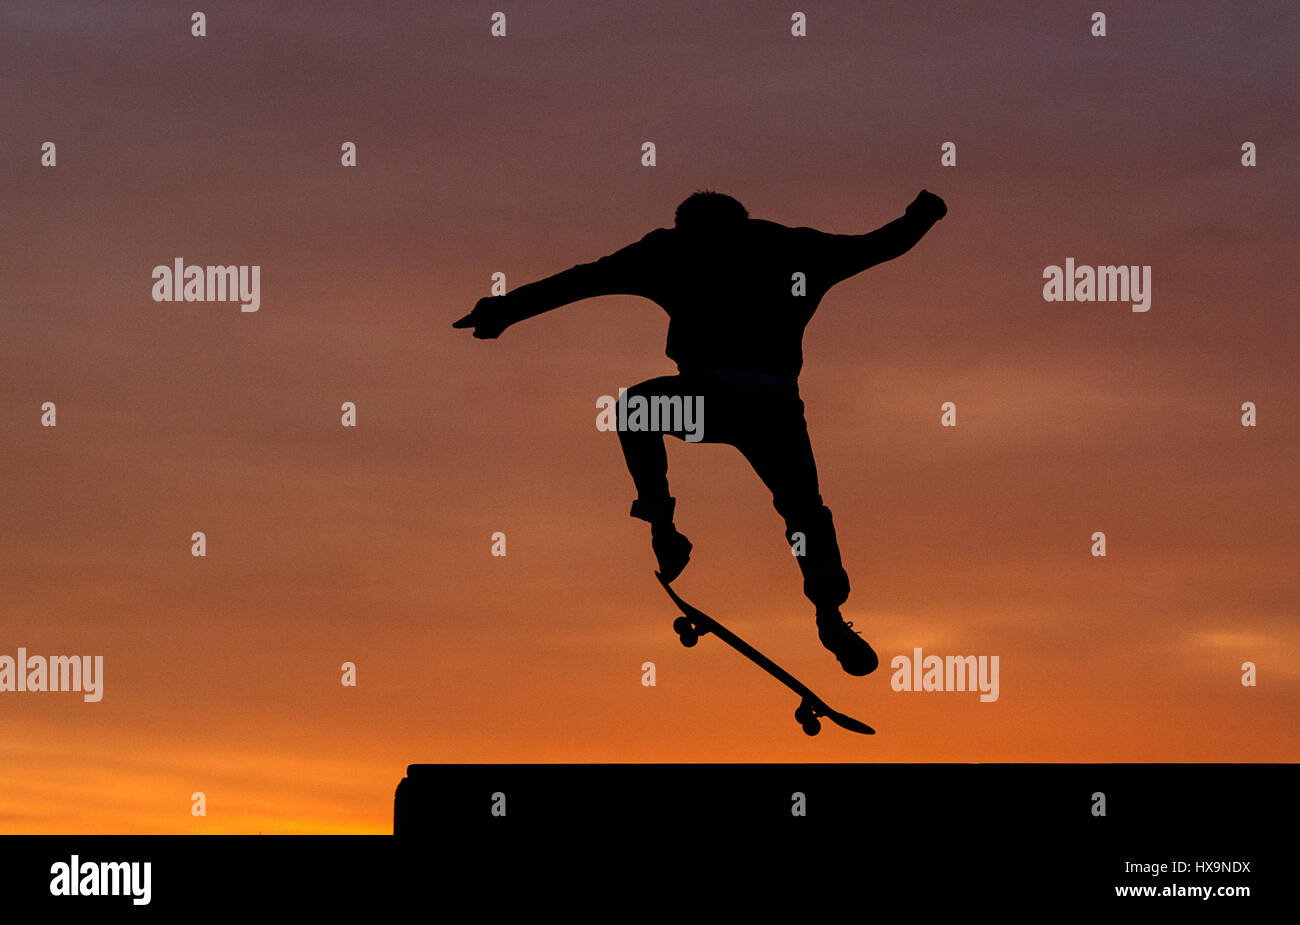 Berlin, Germany. 25th Mar, 2017. A skater in action at sunset at Tempelhofer Feld (lit. Tempelhof Field) in Berlin, Stock Photo